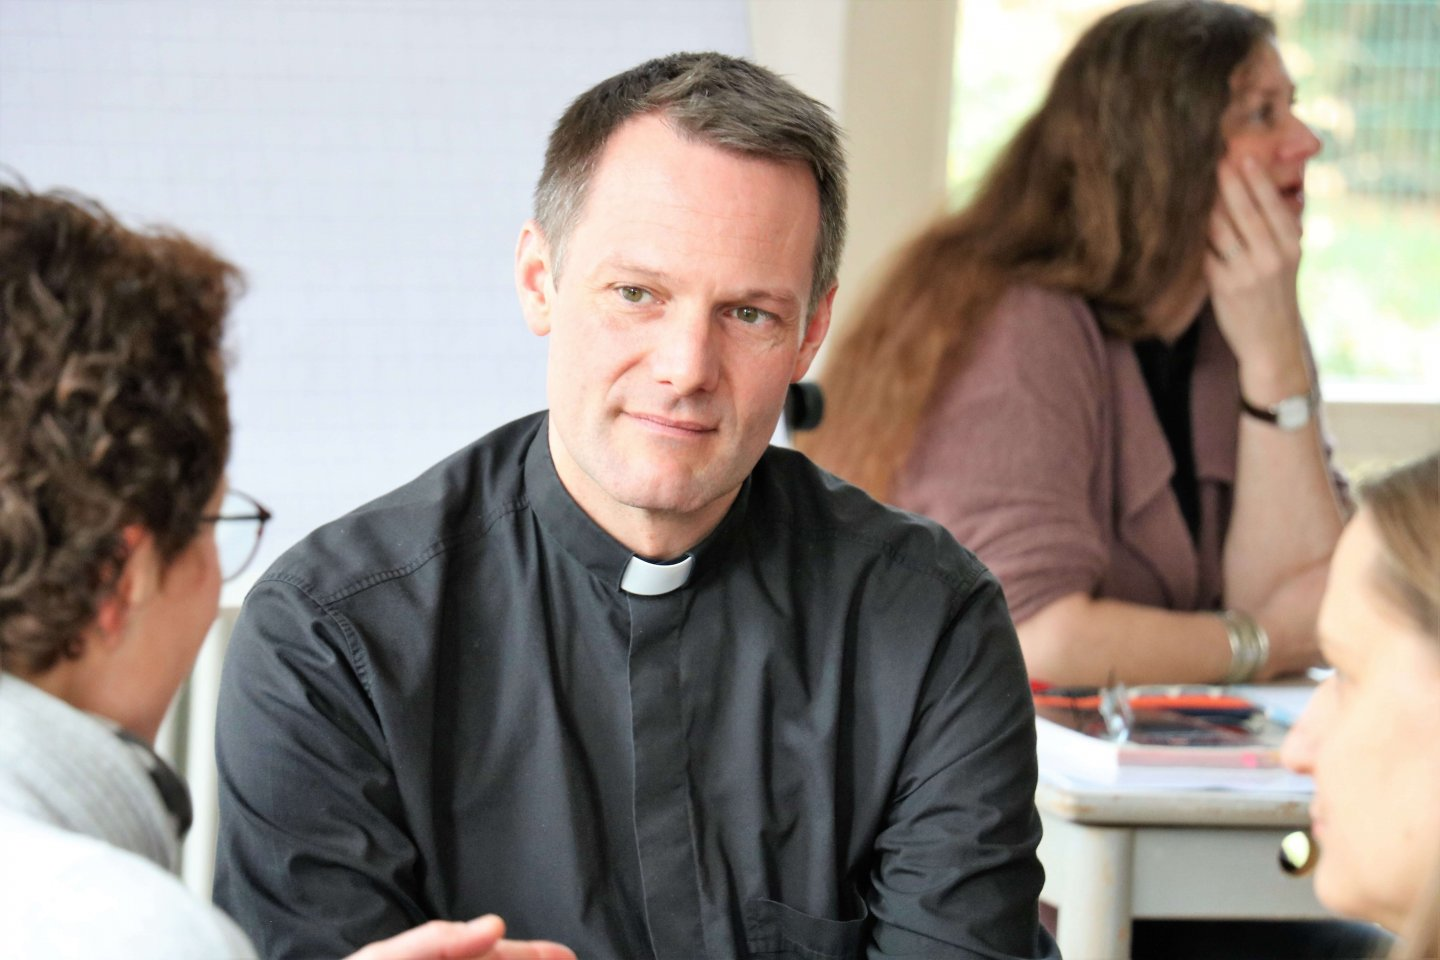 Mettingen Mission Possible on Tour Glauben Faszination wecken Christentum Priester Timo Holtmann Figlhaus Wien Akademie für Dialog und Evangelisation